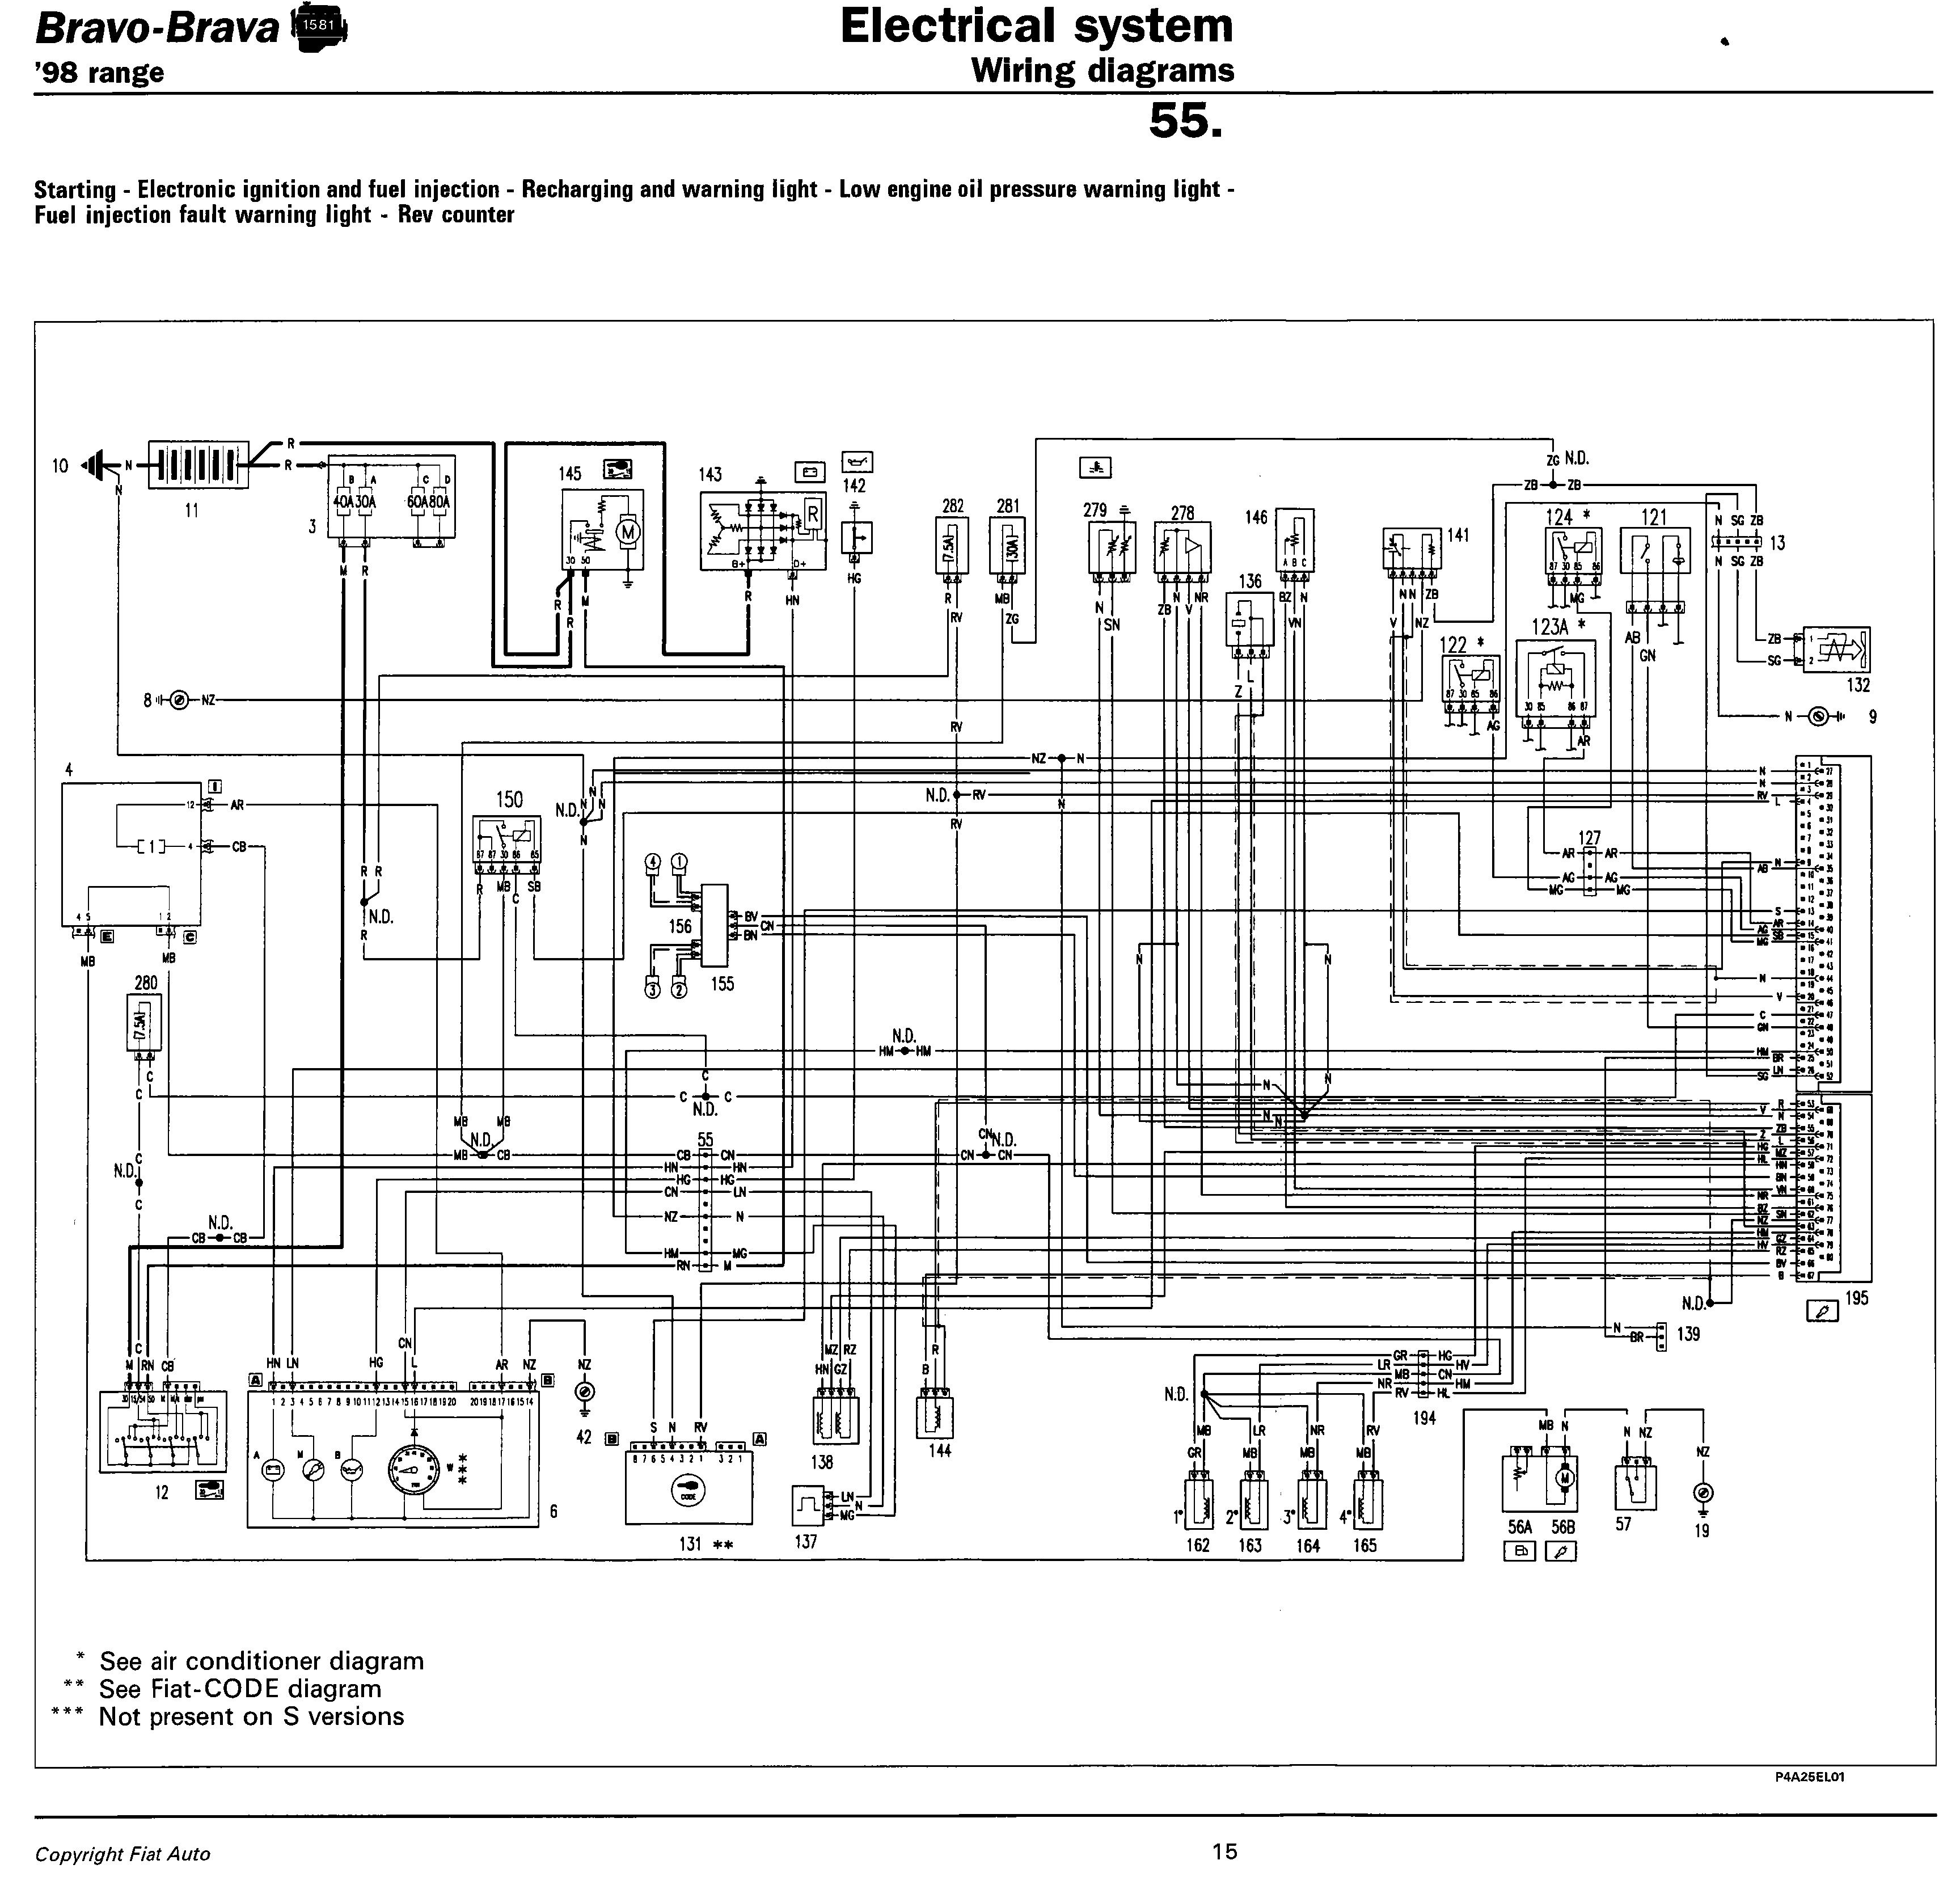 Fiat Ducato Wiring Diagram Schematic Electronic Wire Images Vw Jetta Radio Diagrams 98 And Schematics Doblo Jtd Rhpinxpytripaco At Selfit